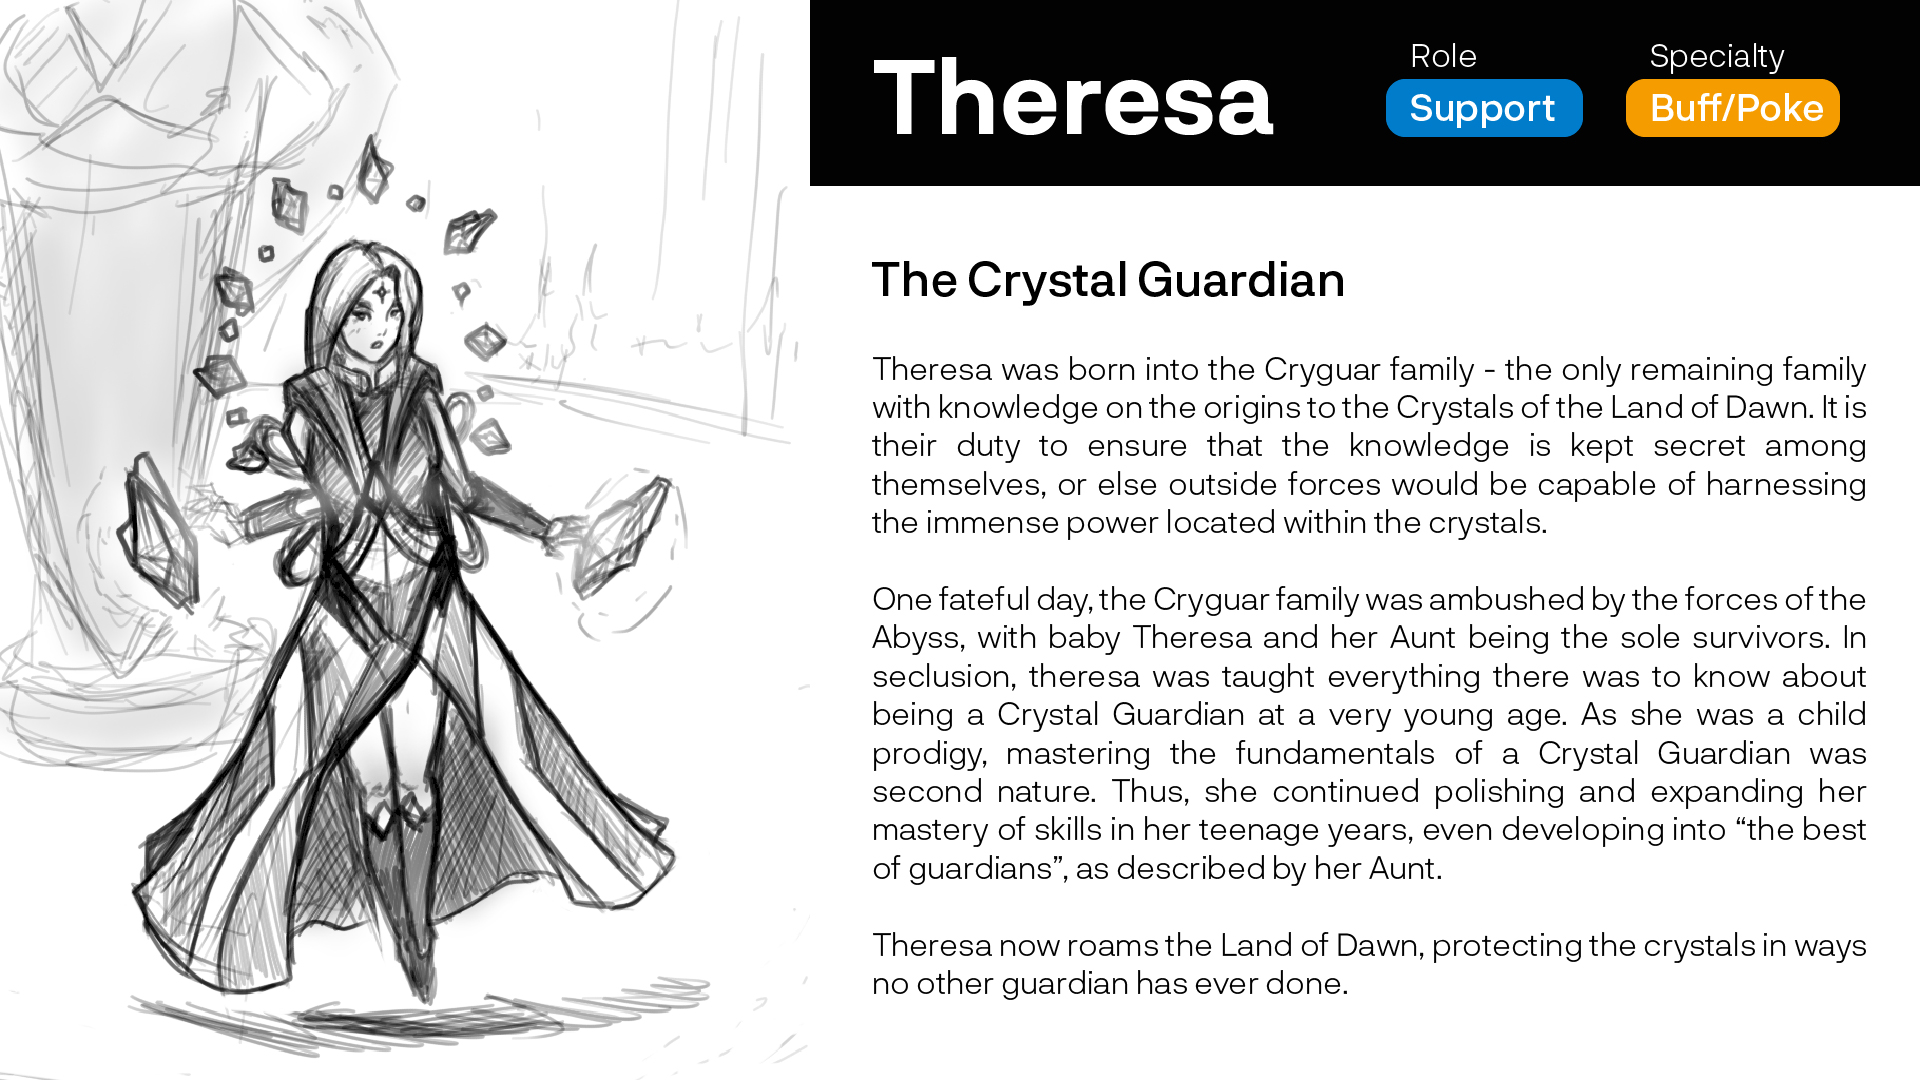 Theresa - The Crystal Guardian-01.jpg